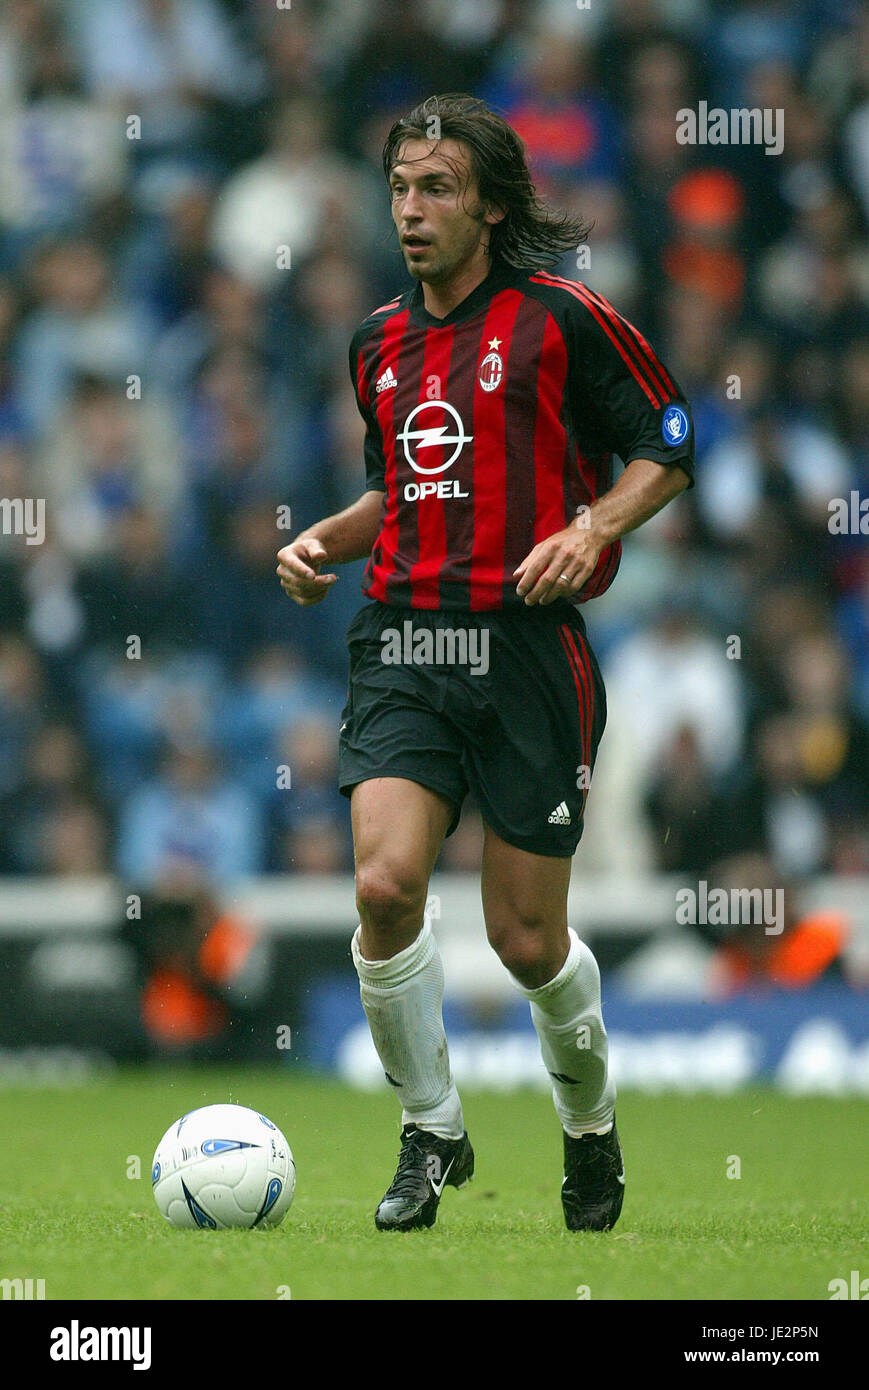 ANDREA PIRLO AC MILAN 27 July 2002 Stock Royalty Free Image